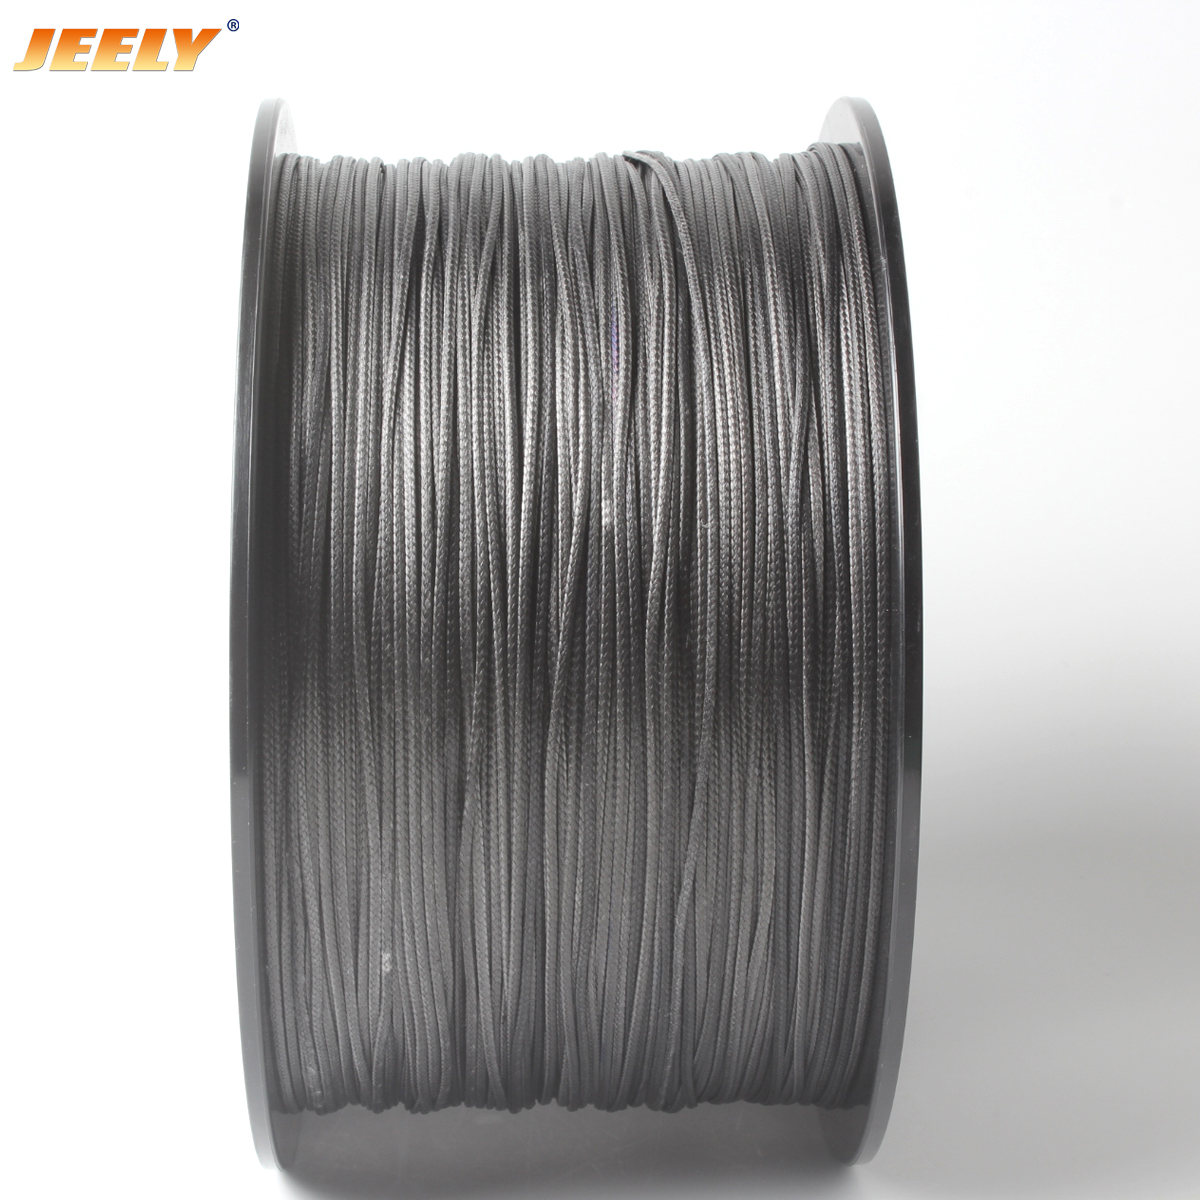 1.6mm Spectra Braided Kite Line